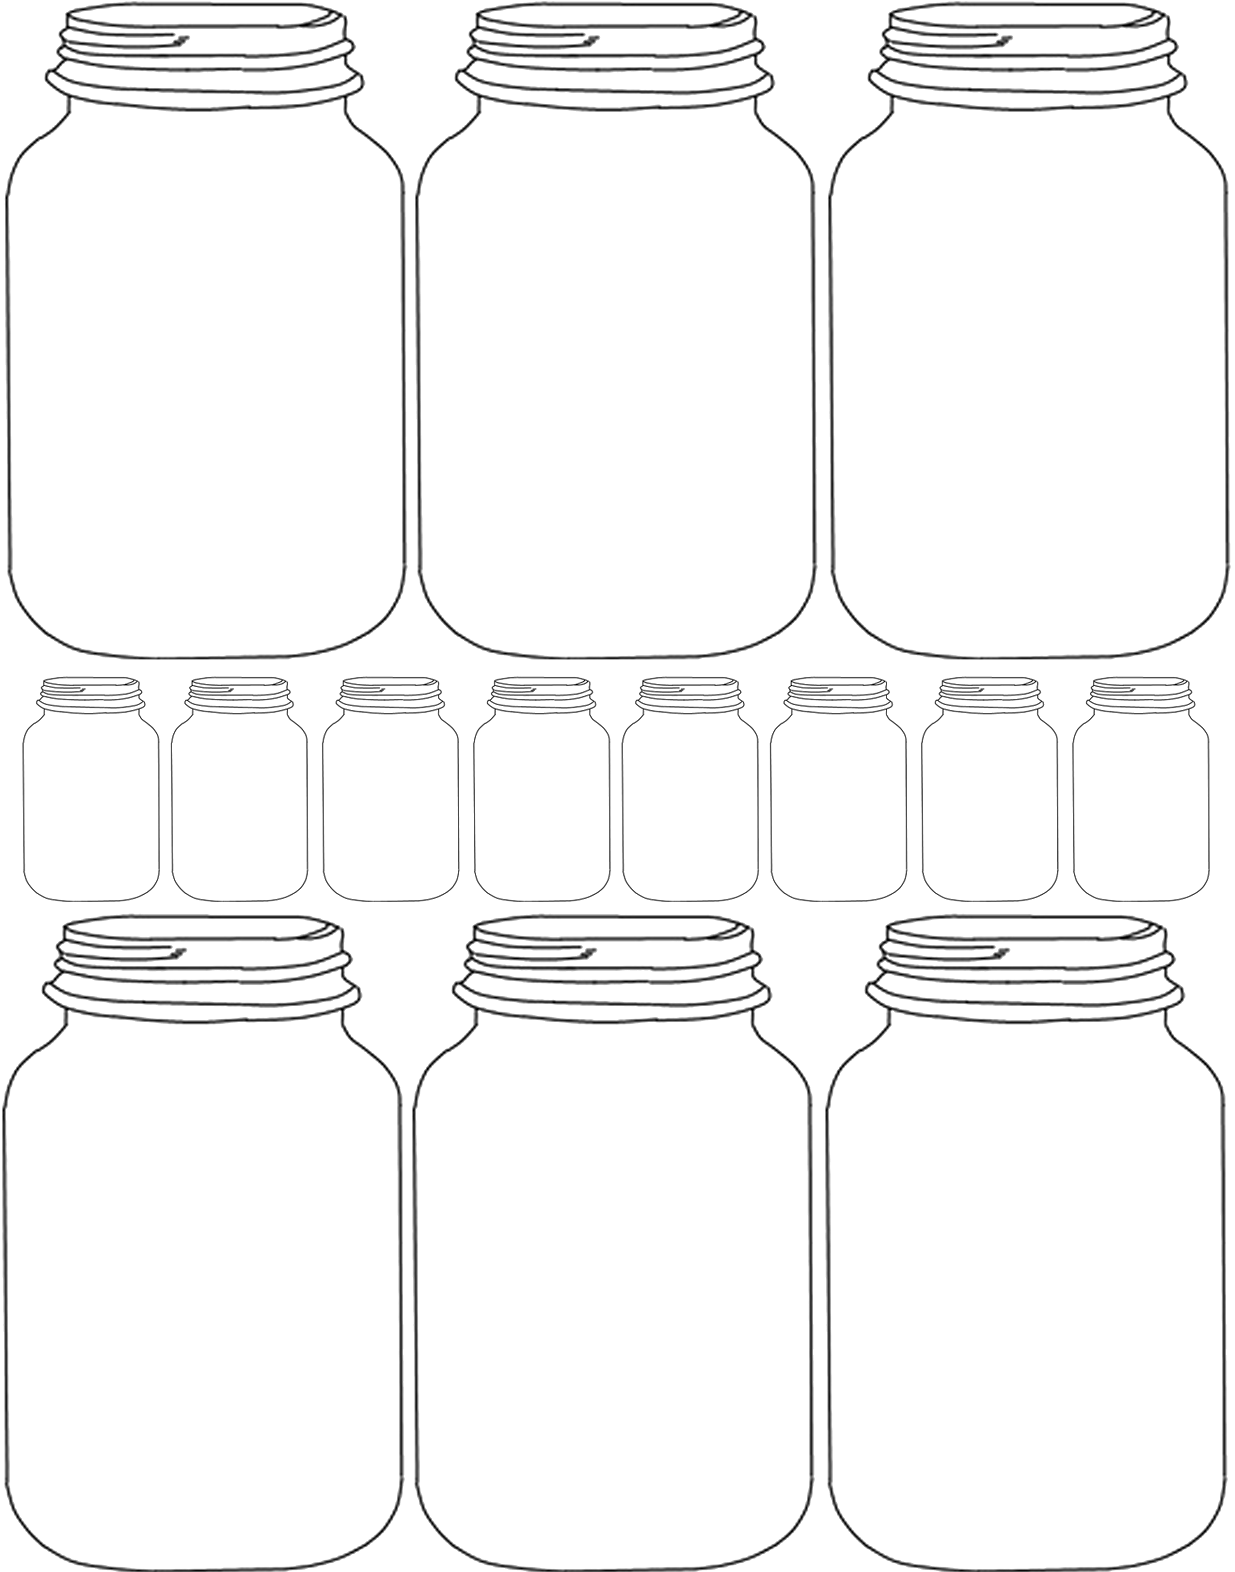 Download HD Mason Jar Clipart Transparent - Blank Mason Jar